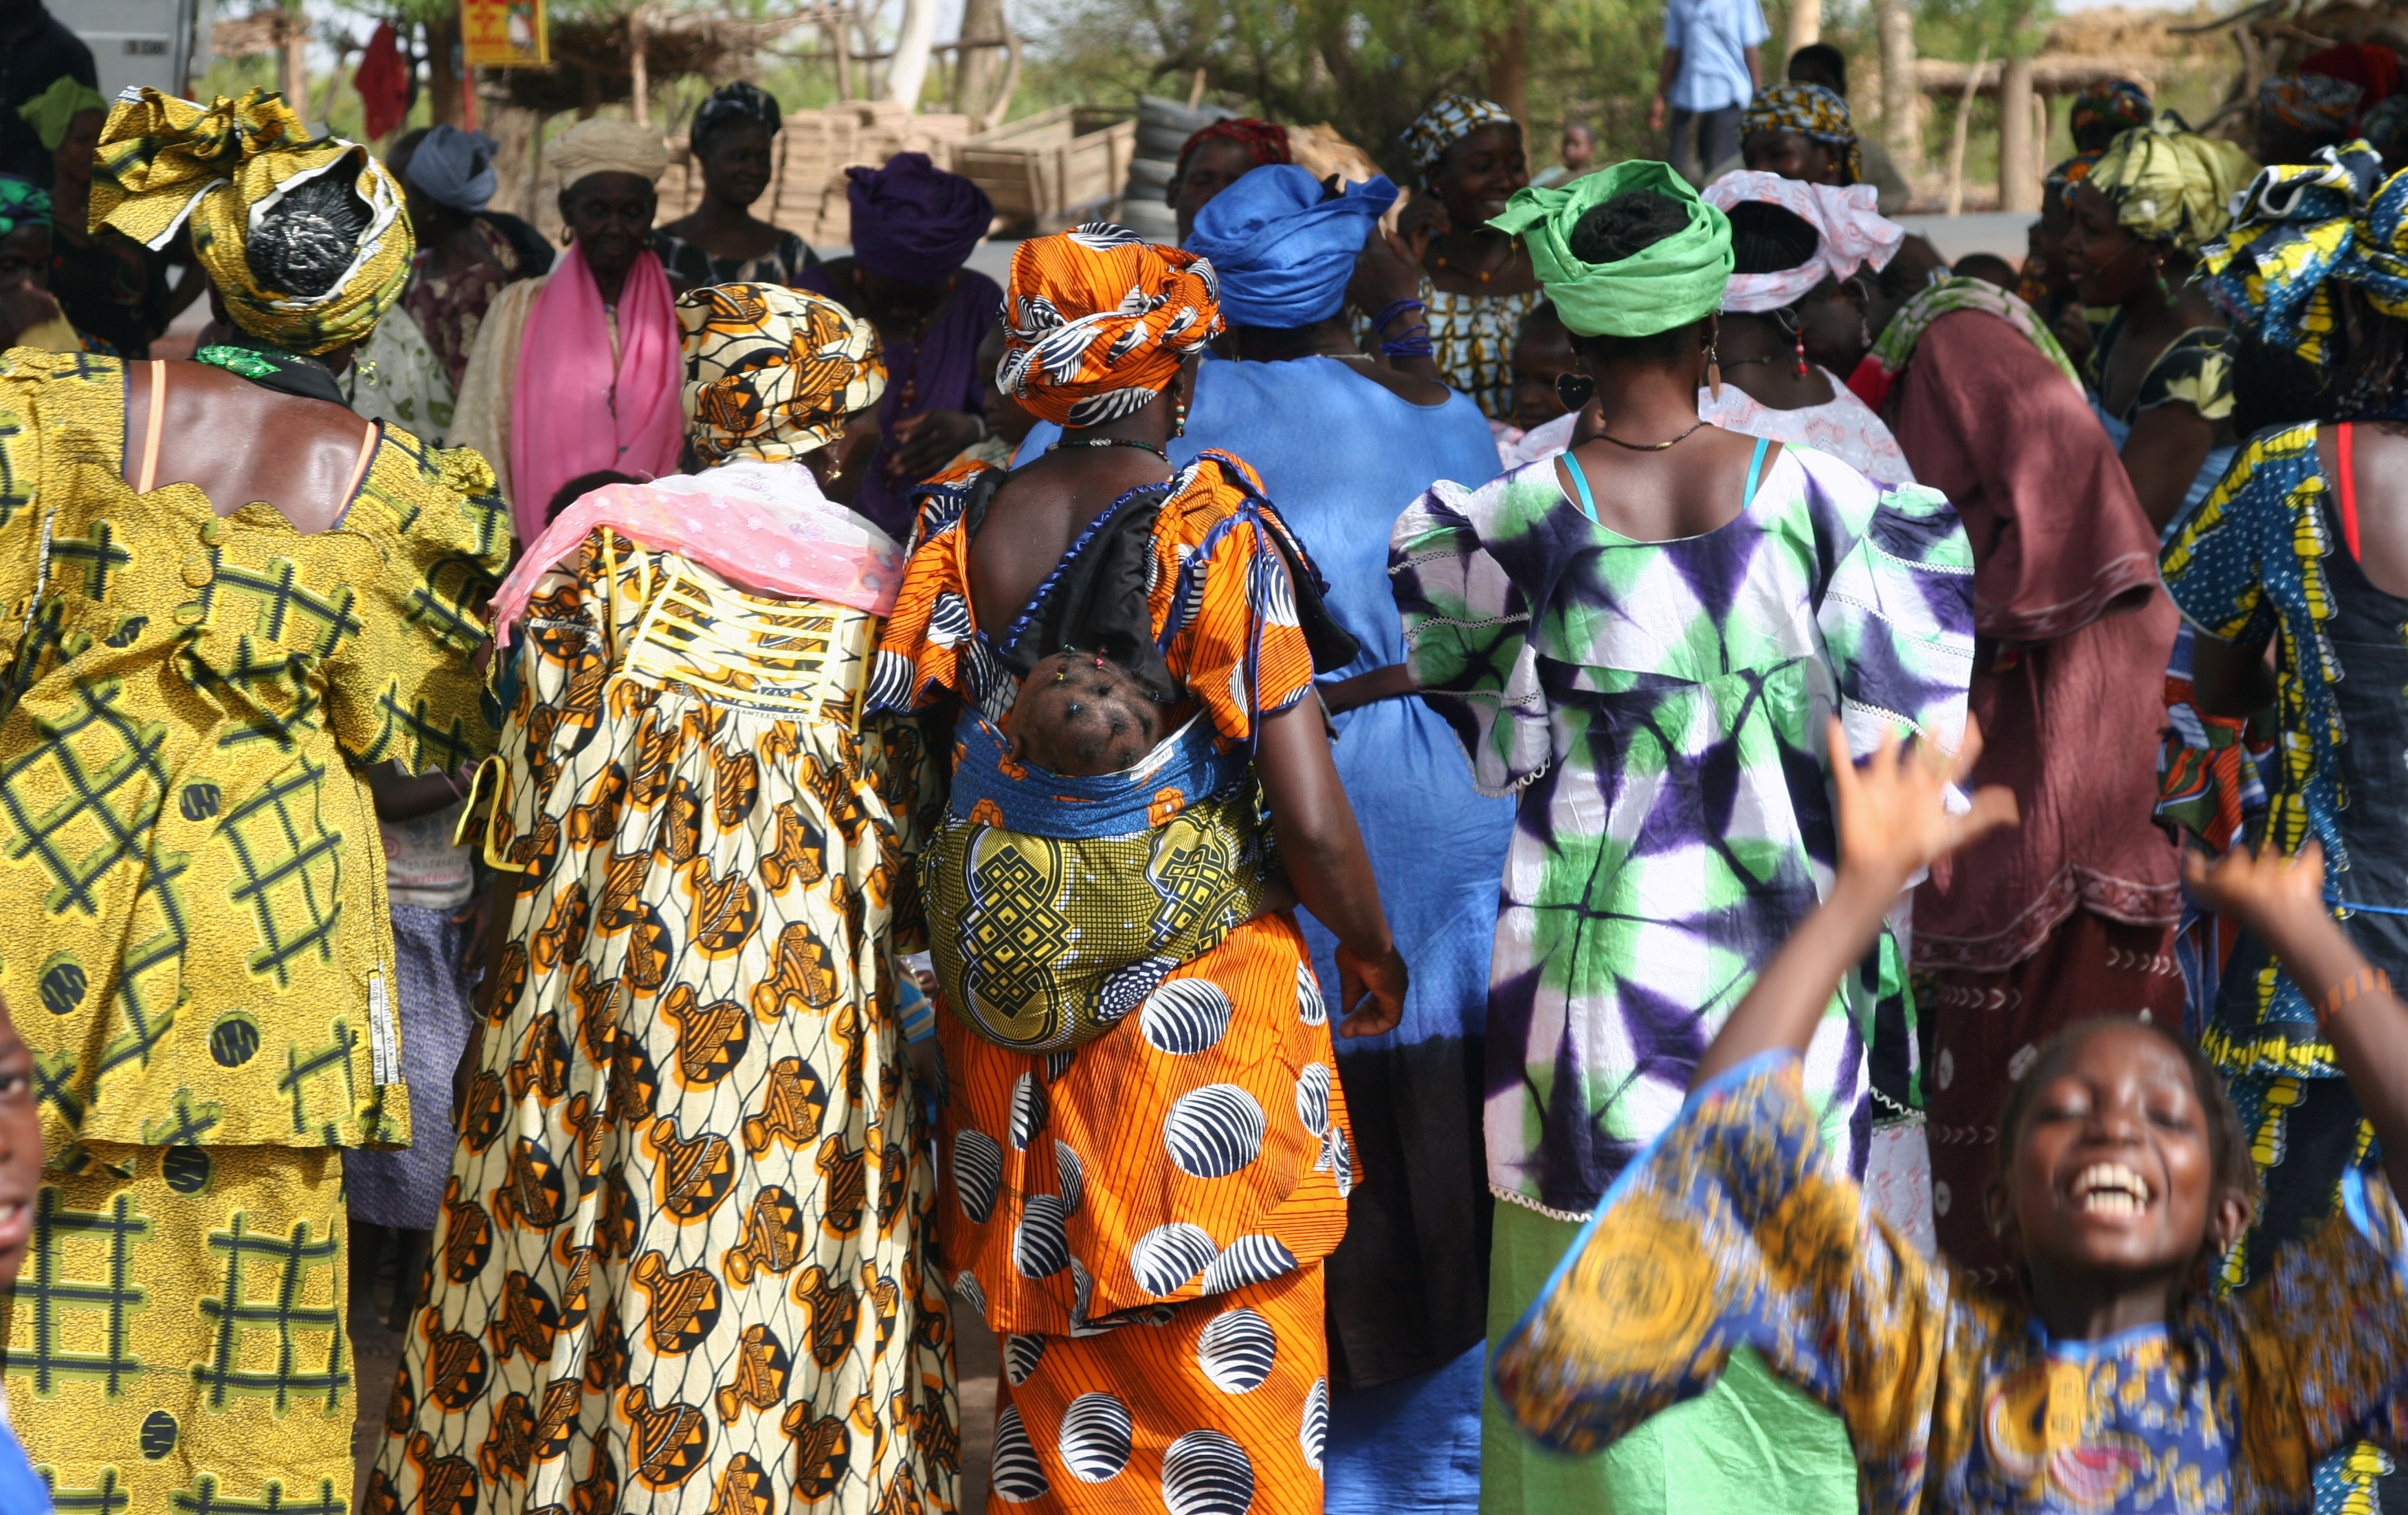 File:Colorful crowd, Mali.jpg  Wikimedia Commons